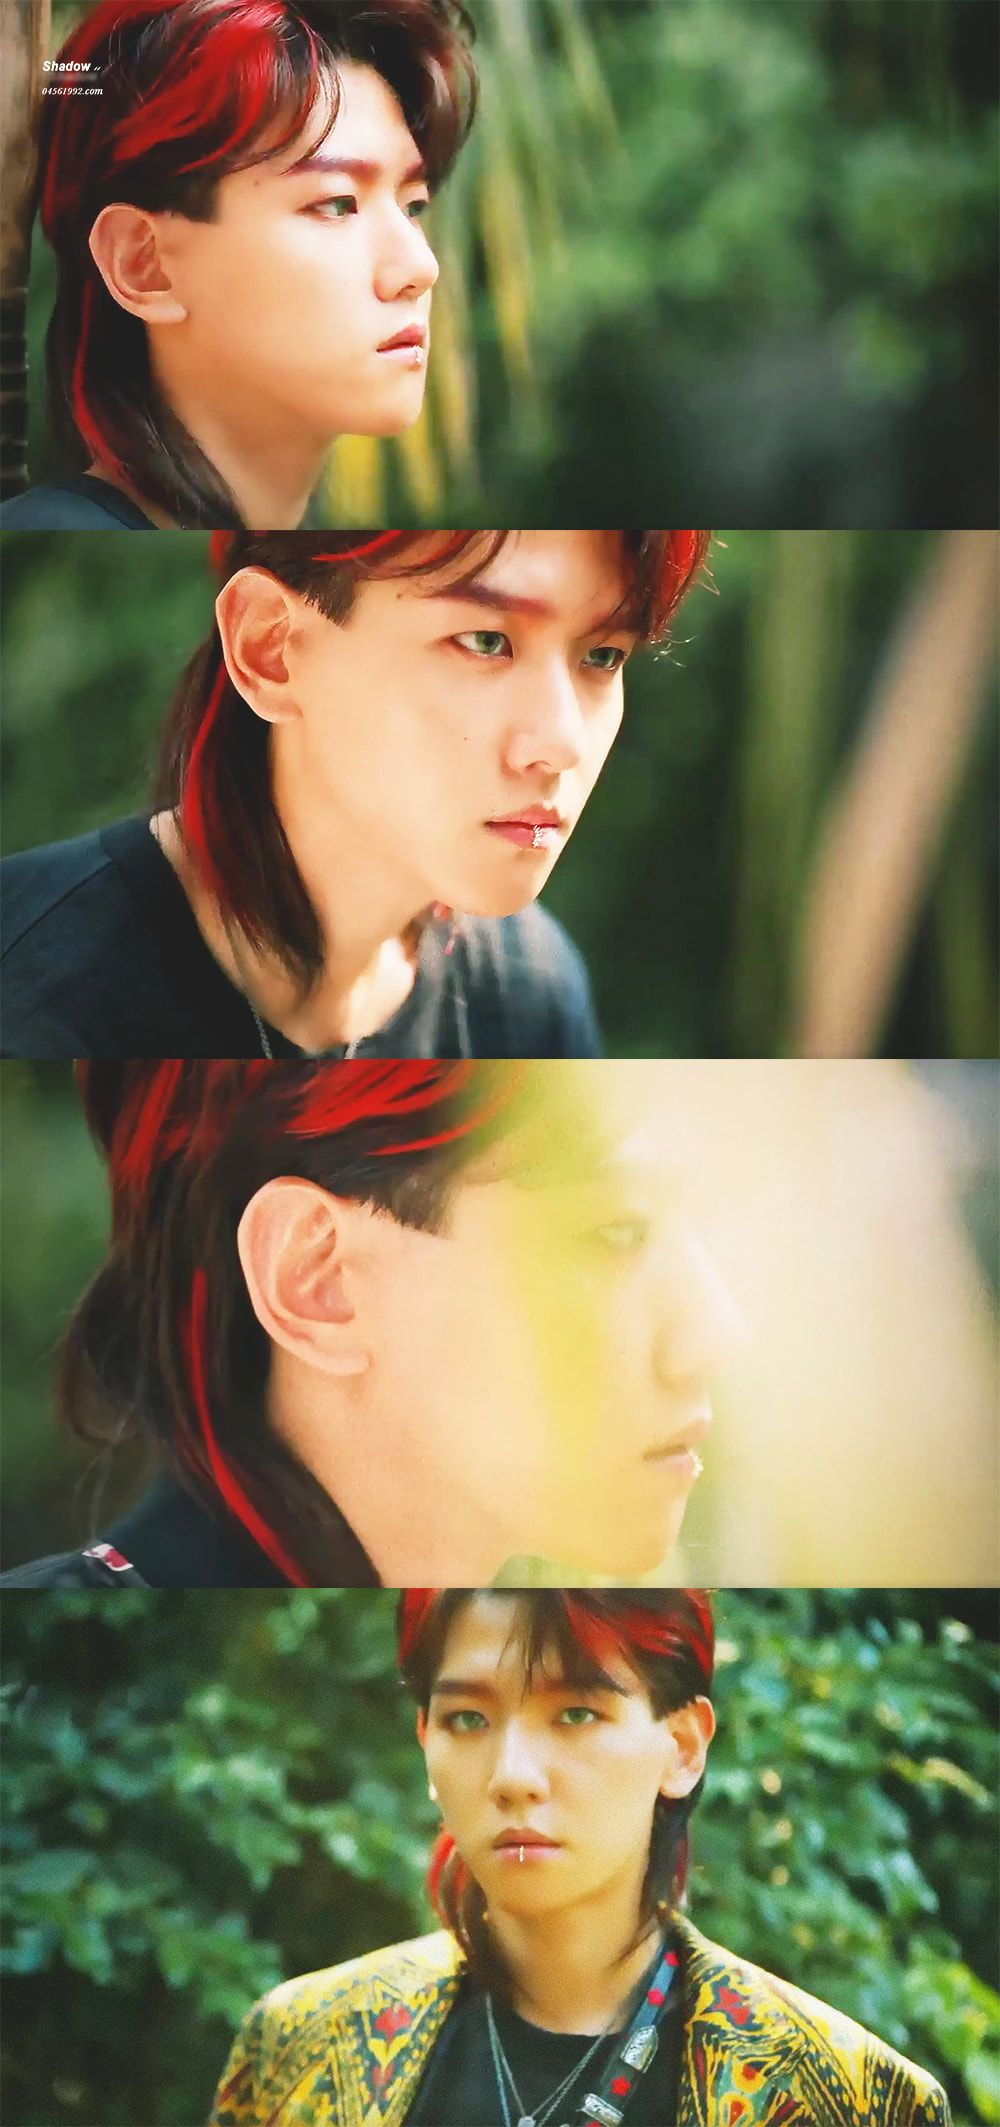 Baekhyuns Mullet Is Life Stuff All The Haters They Dont Know